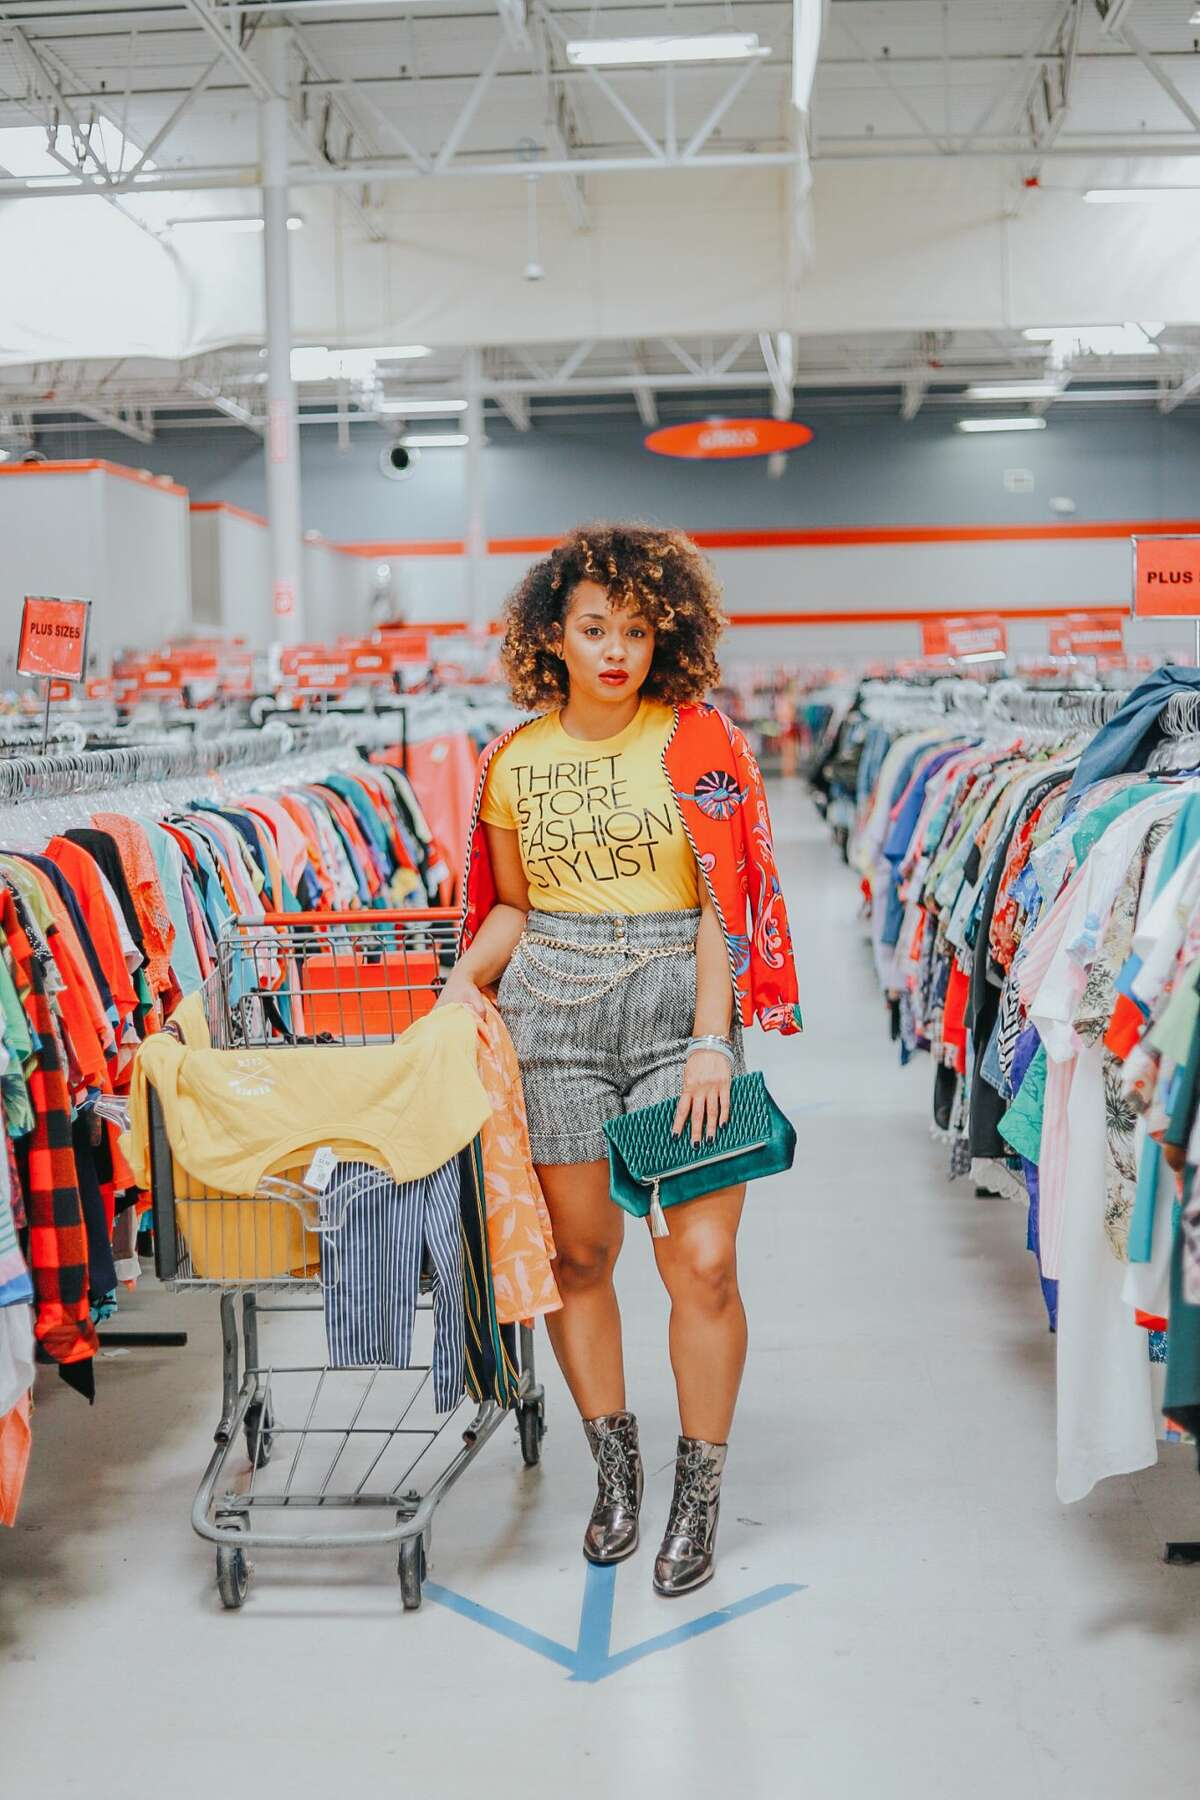 Always Check the Thrift Shop For These 3 Items: When thrift shopping, there are some pieces always worth looking at, according to thrift shopping expert, personal shopper and stylist Sharoya Hall from ImPrettyThrifty